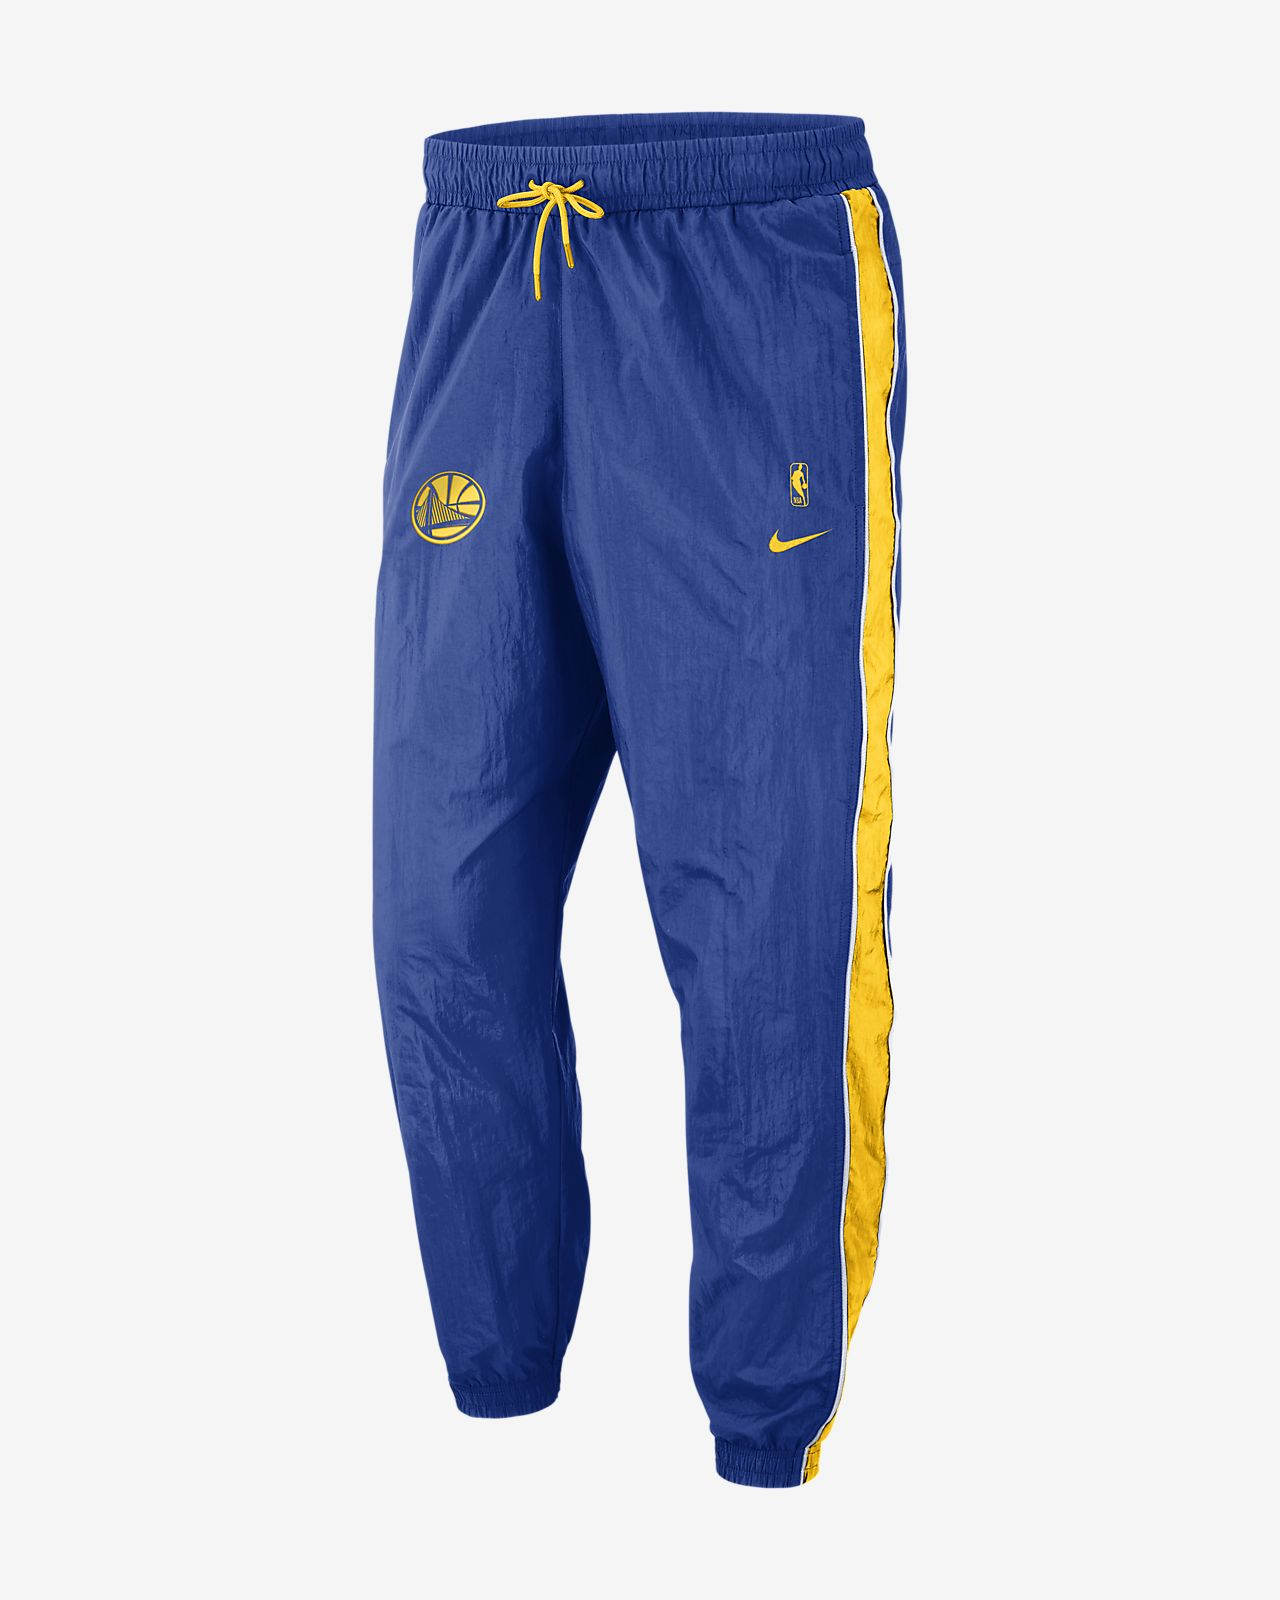 3e30119e6f4 Golden State Warriors Nike Men s NBA Tracksuit Pants. Nike.com